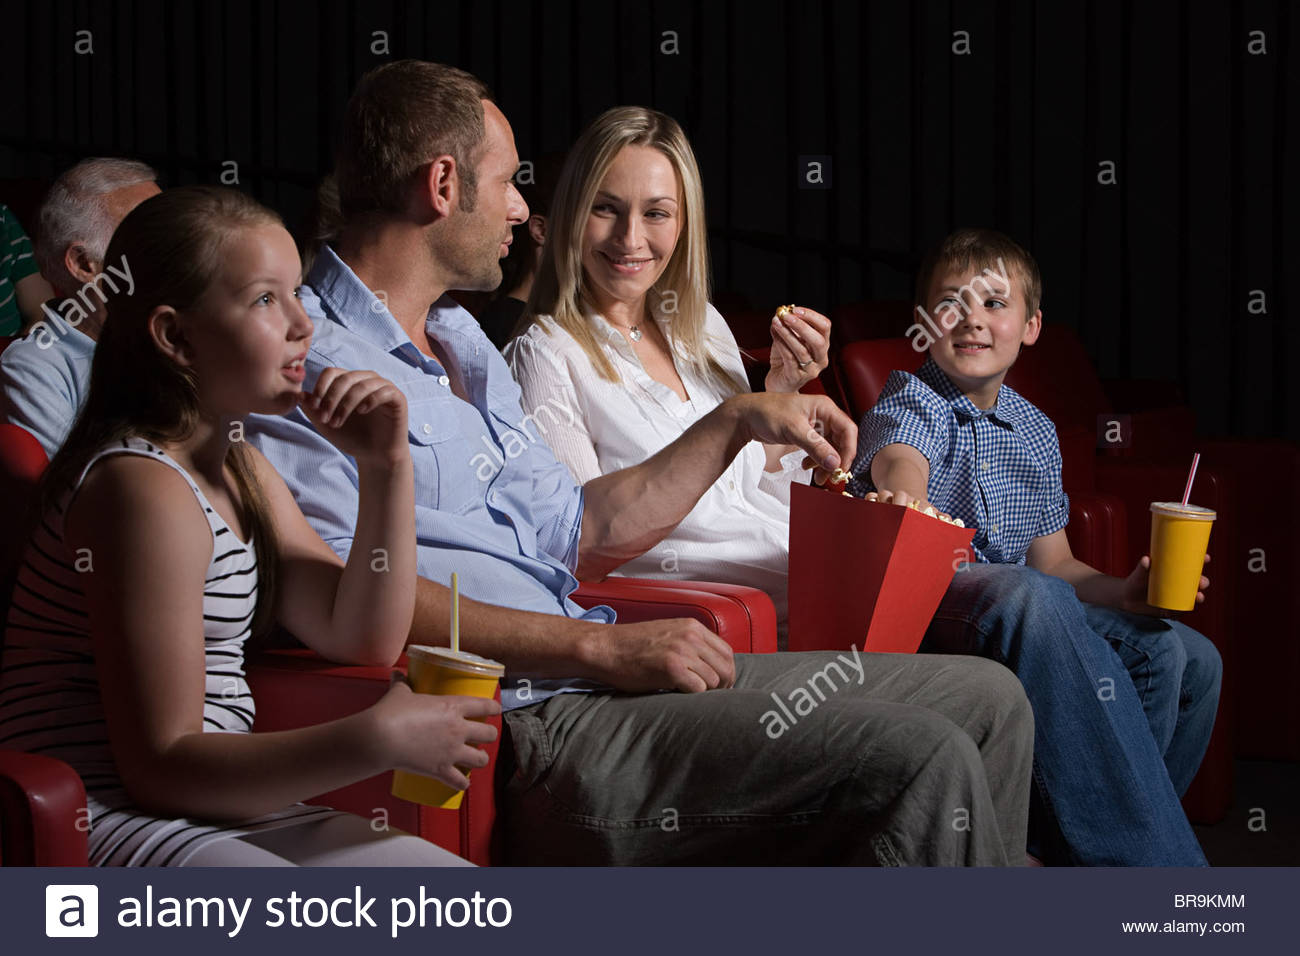 family watching movie at the movie theater stock photo 31560500 alamy